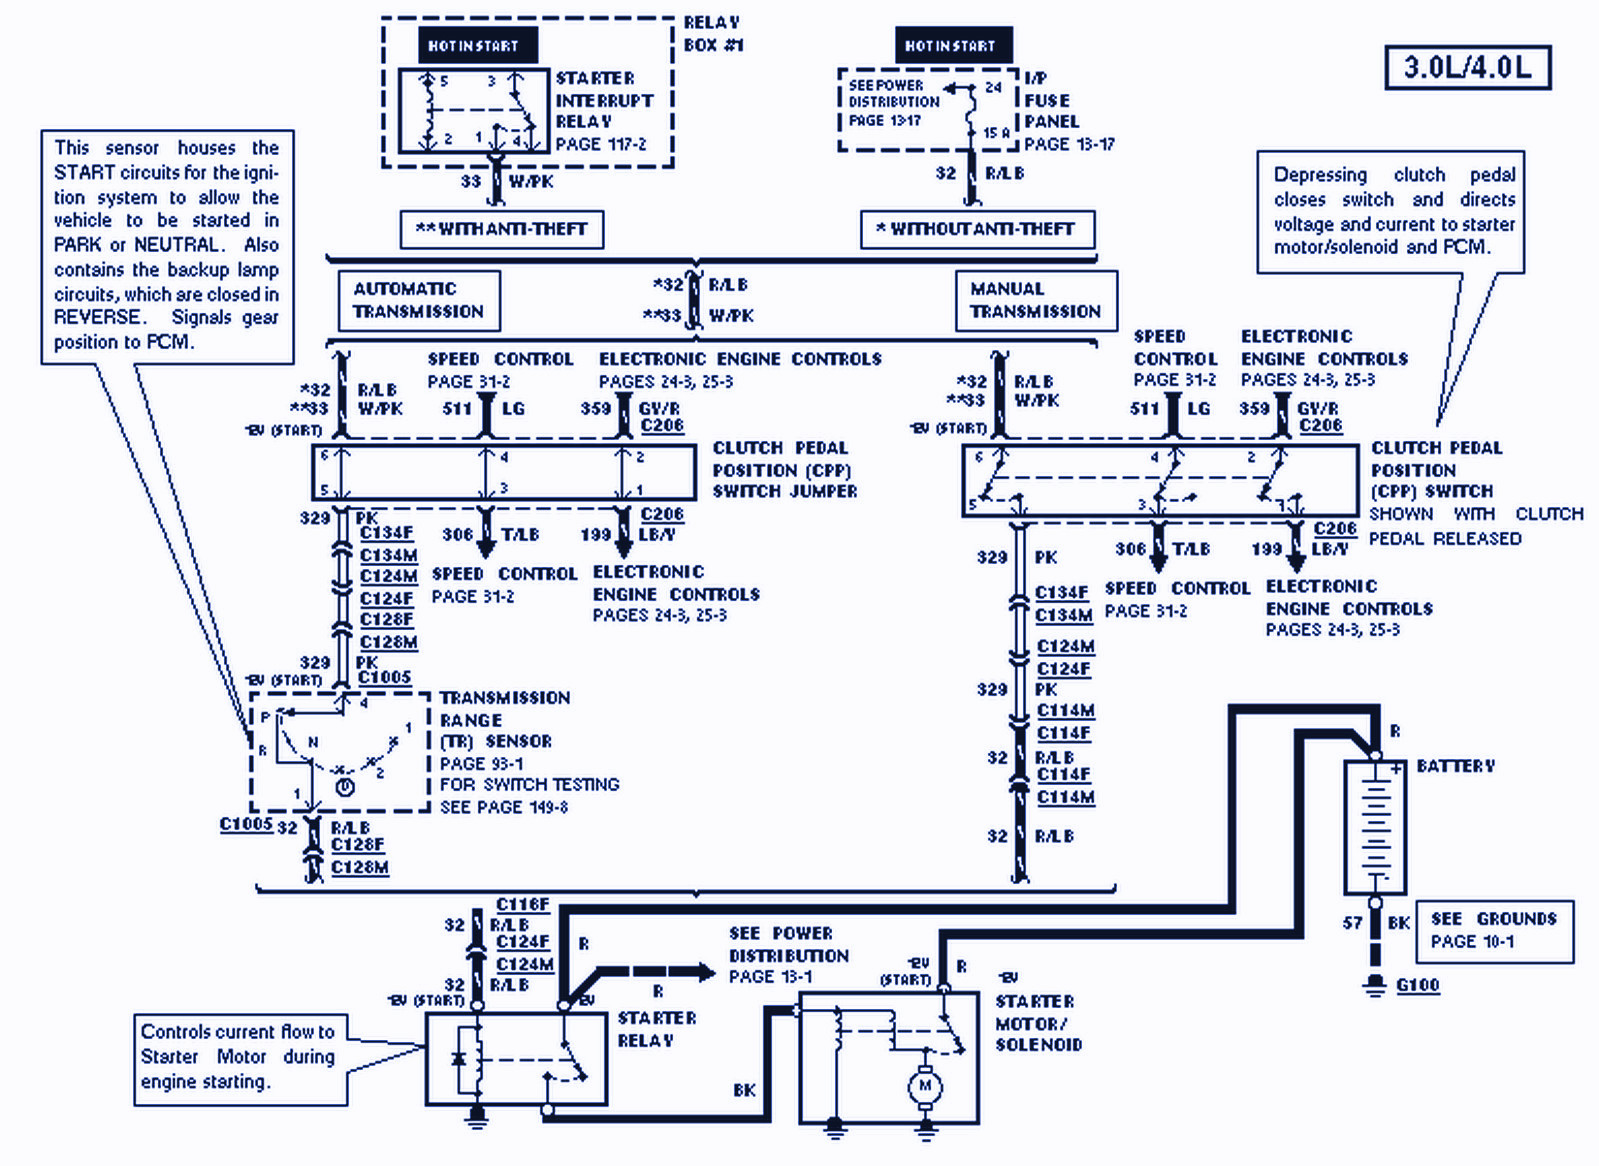 1998 ford super duty wiring diagram online wiring diagram dataf350 super duty wiring diagram on 96 accord fuel pump wiring diagramford e 450 wiring diagrams